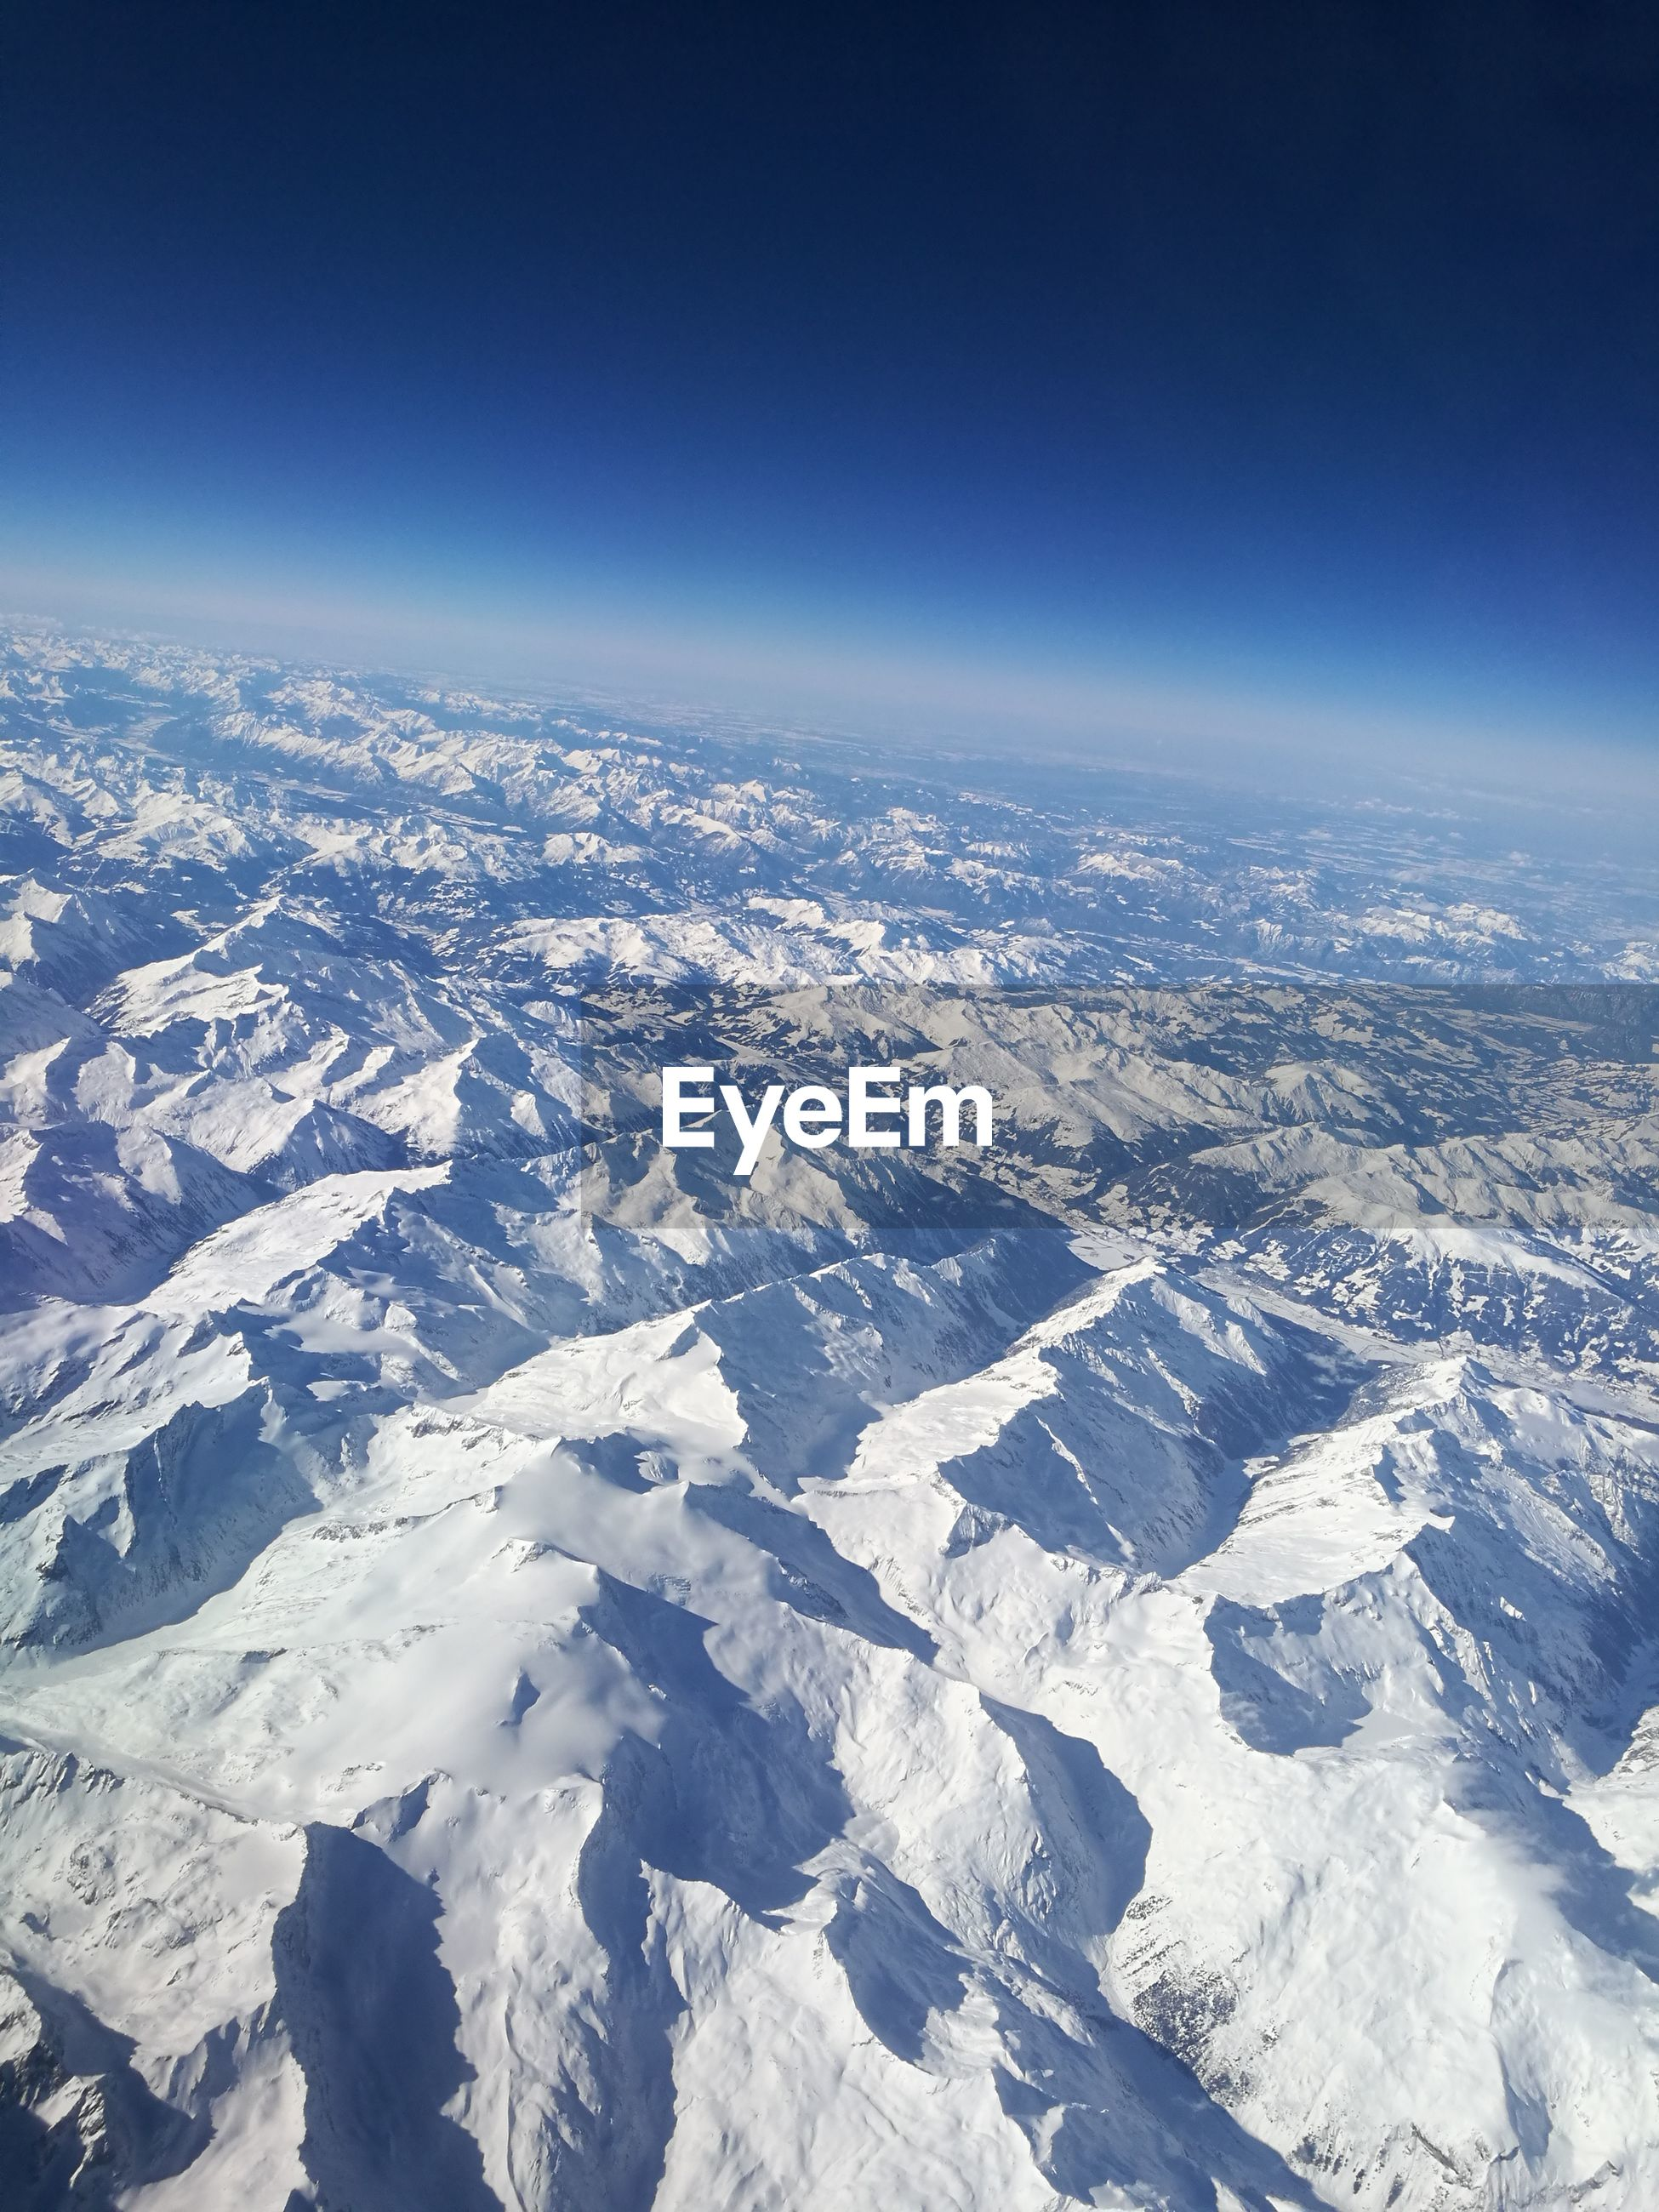 beauty in nature, nature, tranquil scene, cold temperature, scenics, tranquility, aerial view, snow, winter, no people, outdoors, landscape, day, snowcapped mountain, blue, mountain, sky